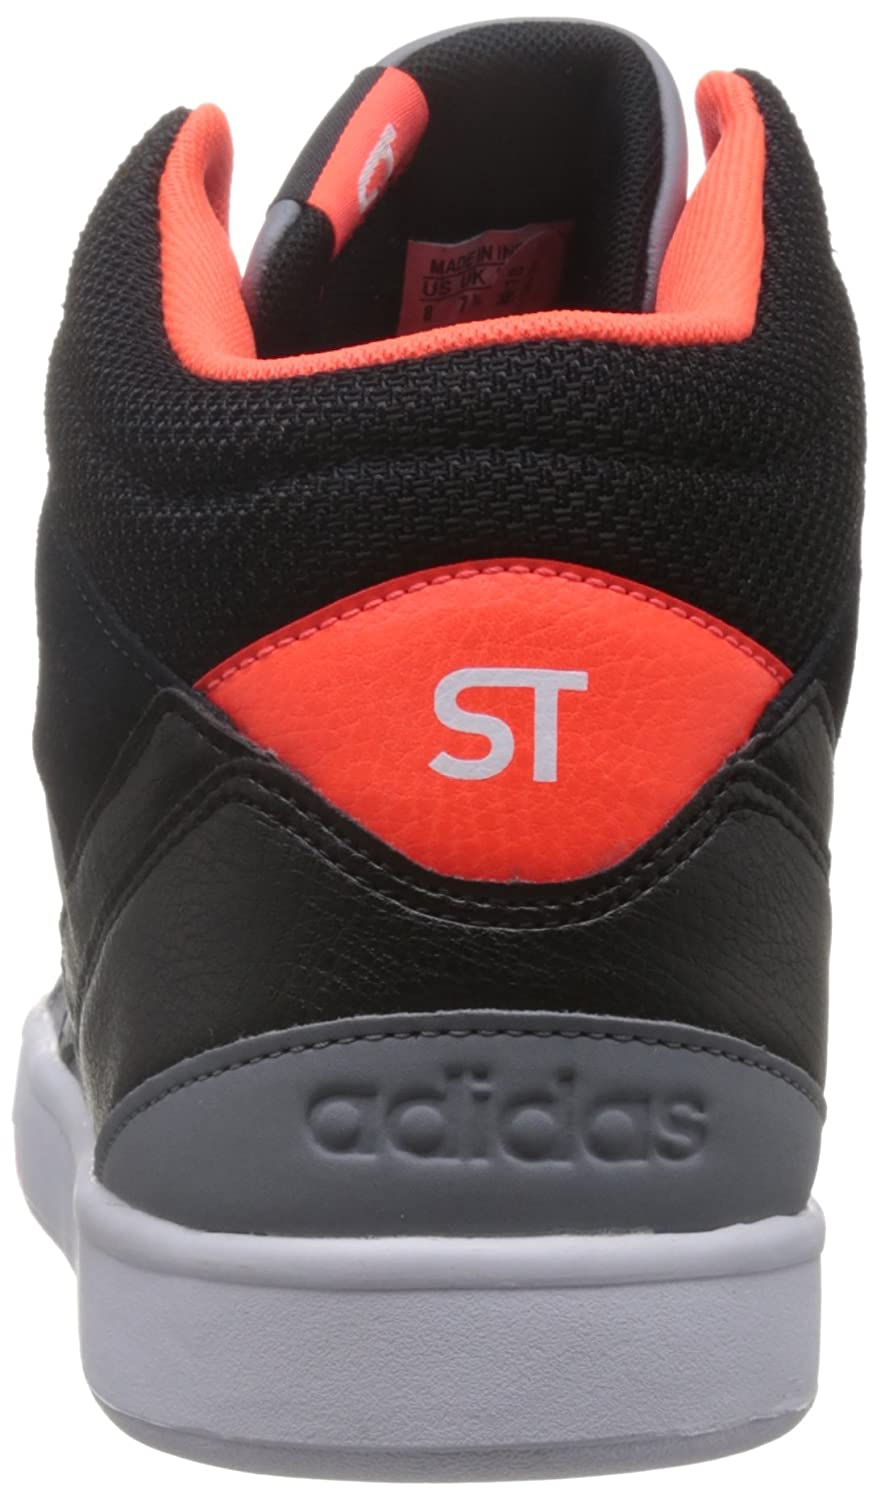 new product b92e7 660a9 ... various styles adidas neo Men s Park St Kflip Mid Grey, Cblack and  Solred Sneakers ...